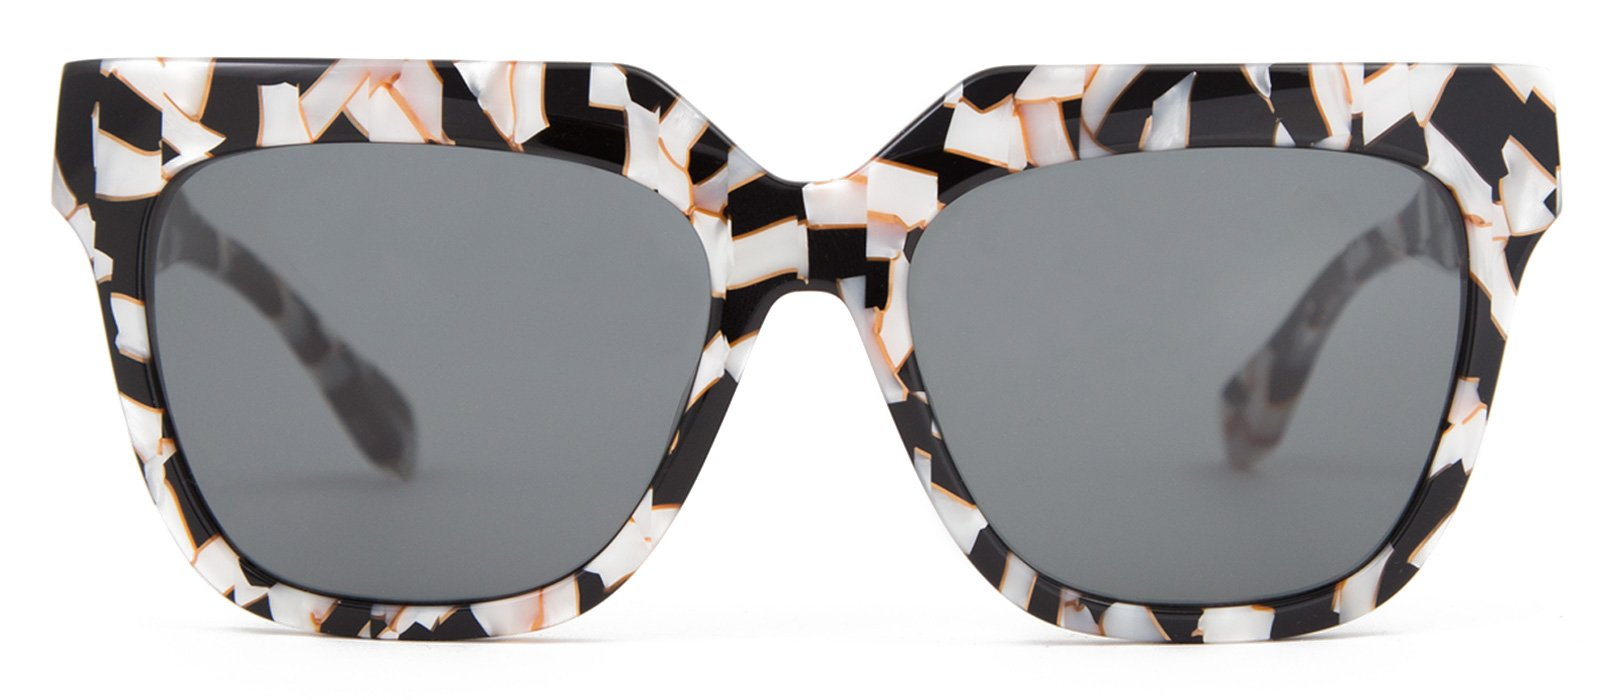 Sonix Women's Avalon Sunglasses, Luxe Marble/Black, One Size by Sonix (Image #1)